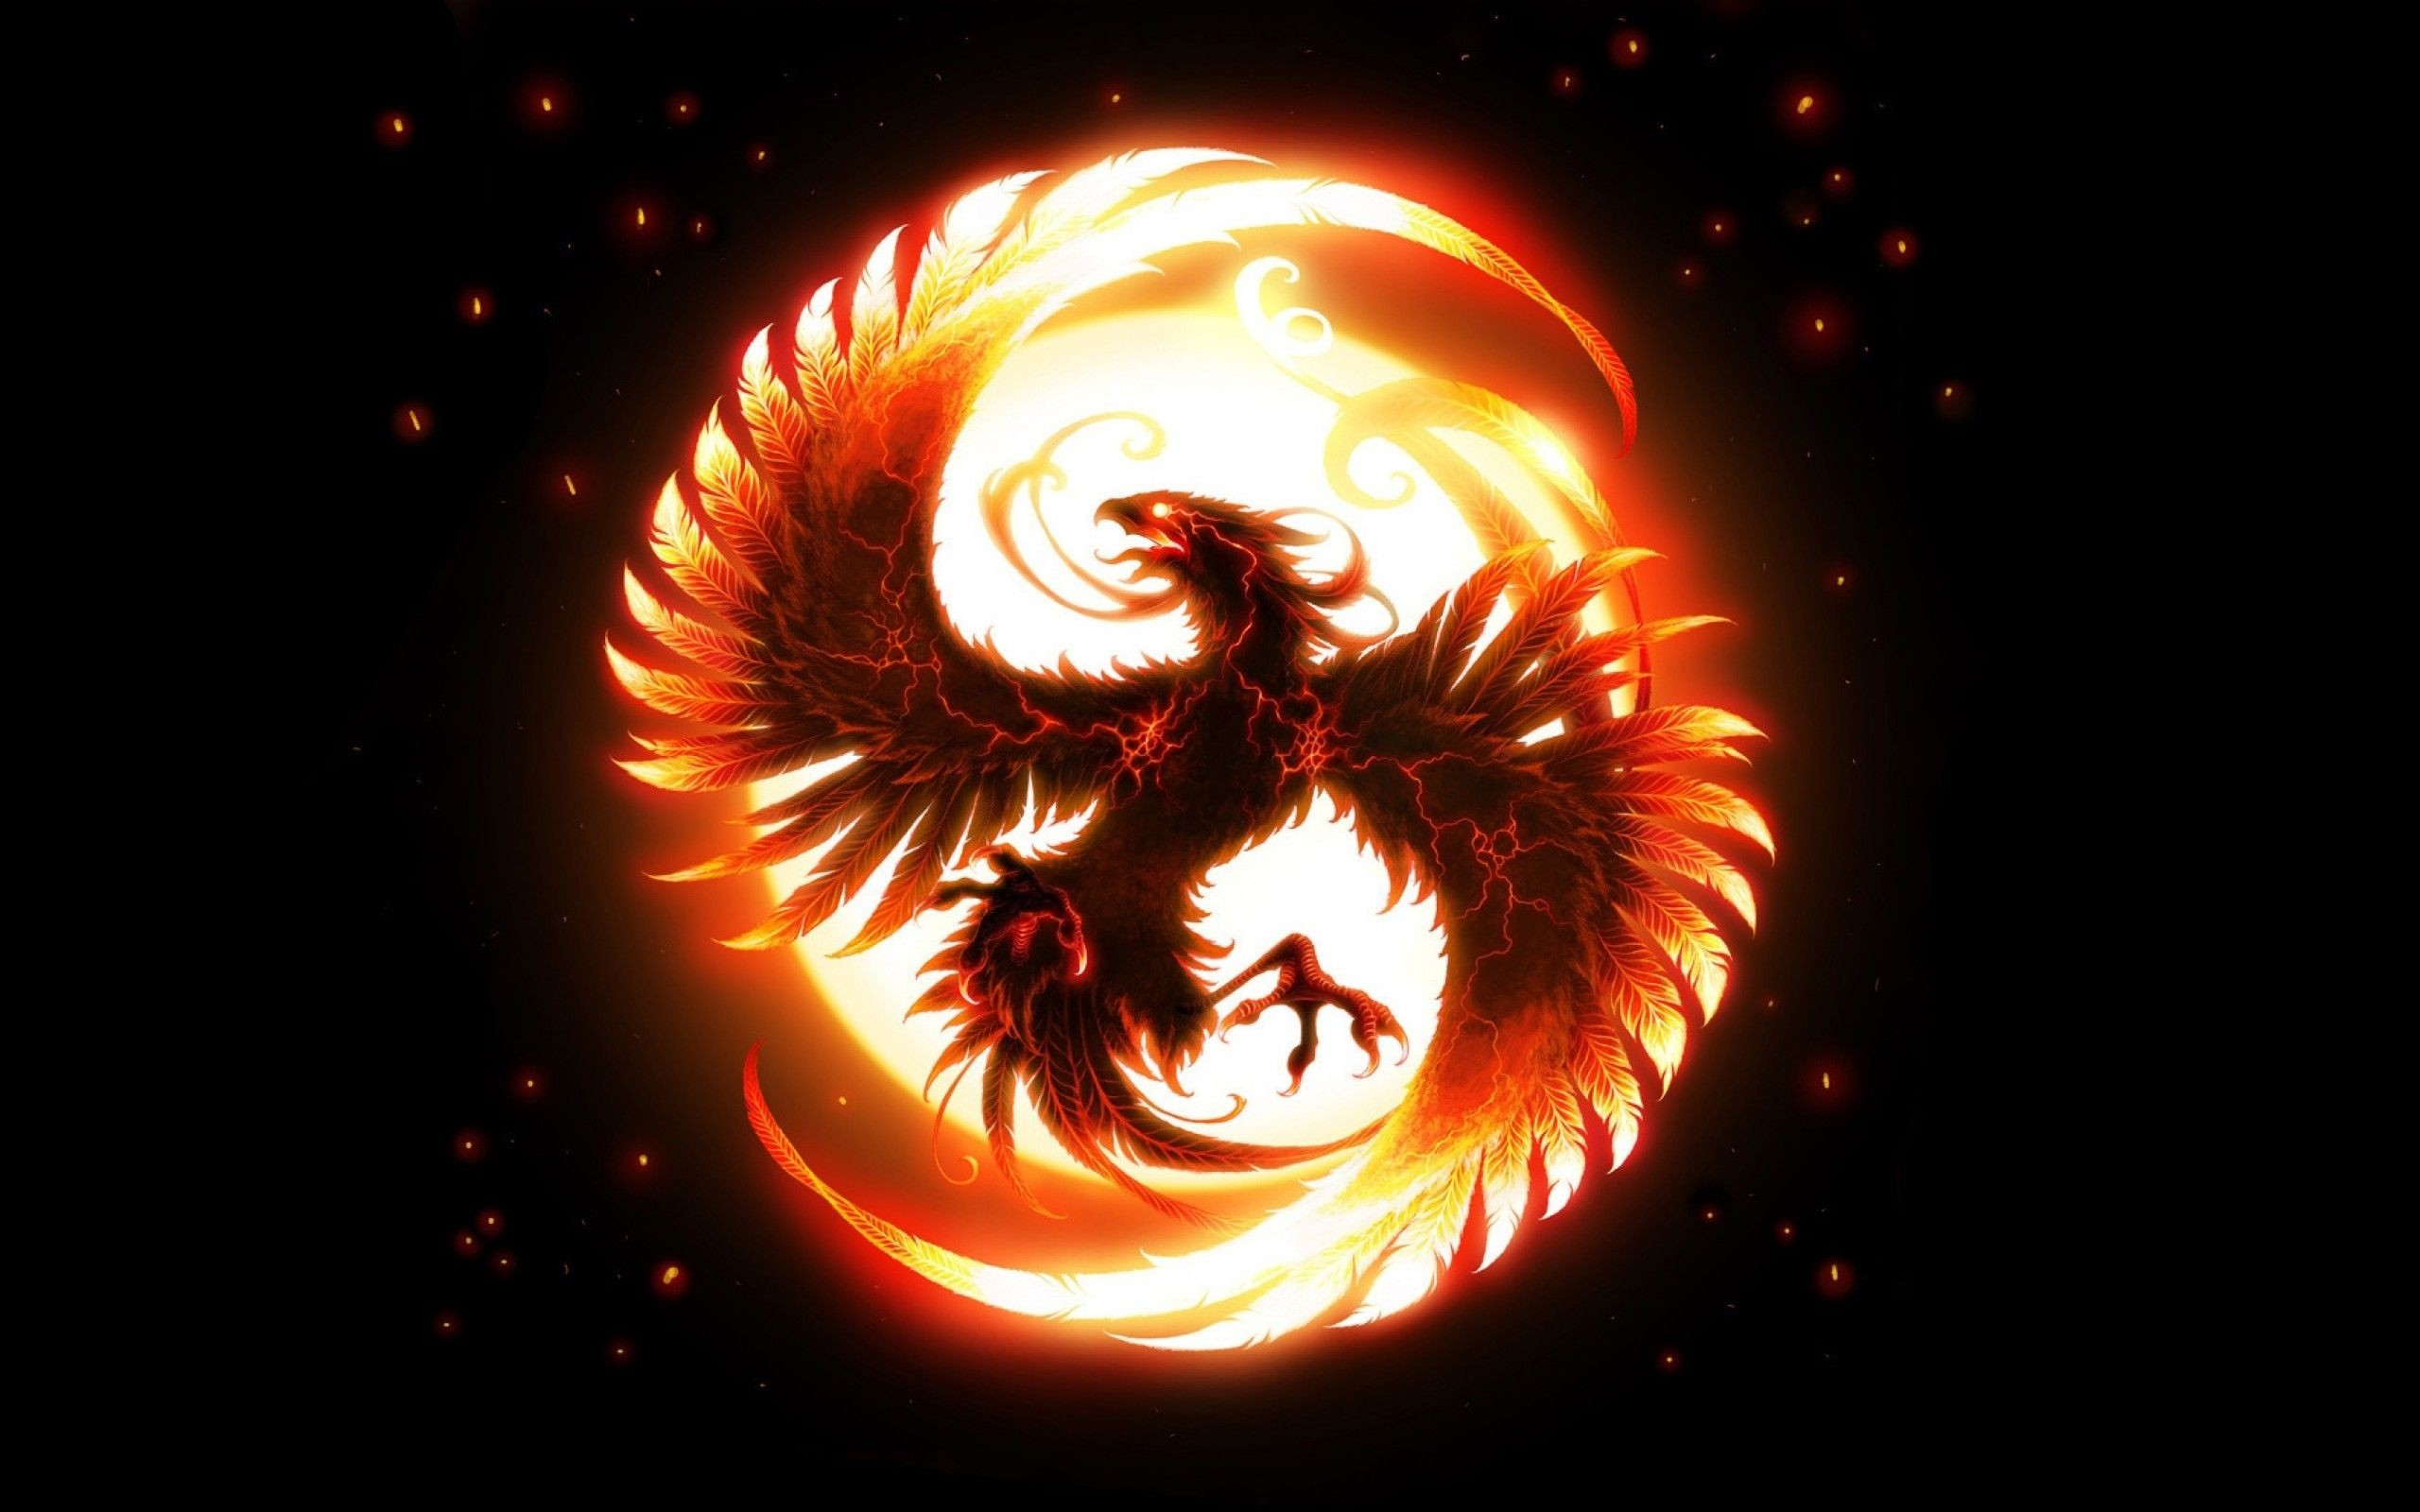 General 2560x1600 phoenix Vonikk simple background